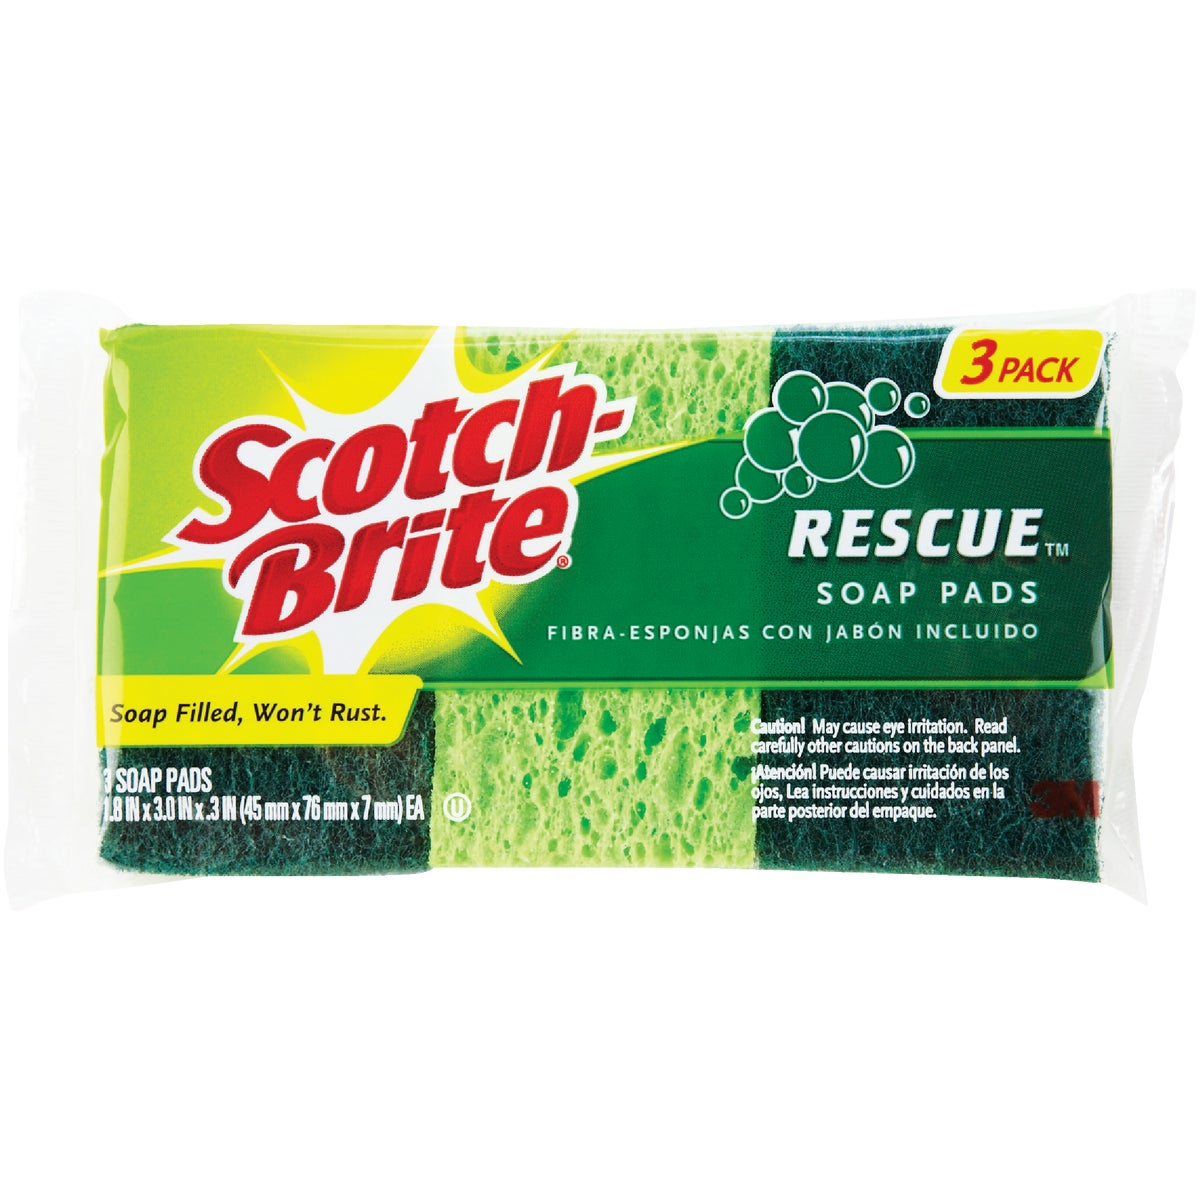 SCOTCH-BRITE RESCUE PAD